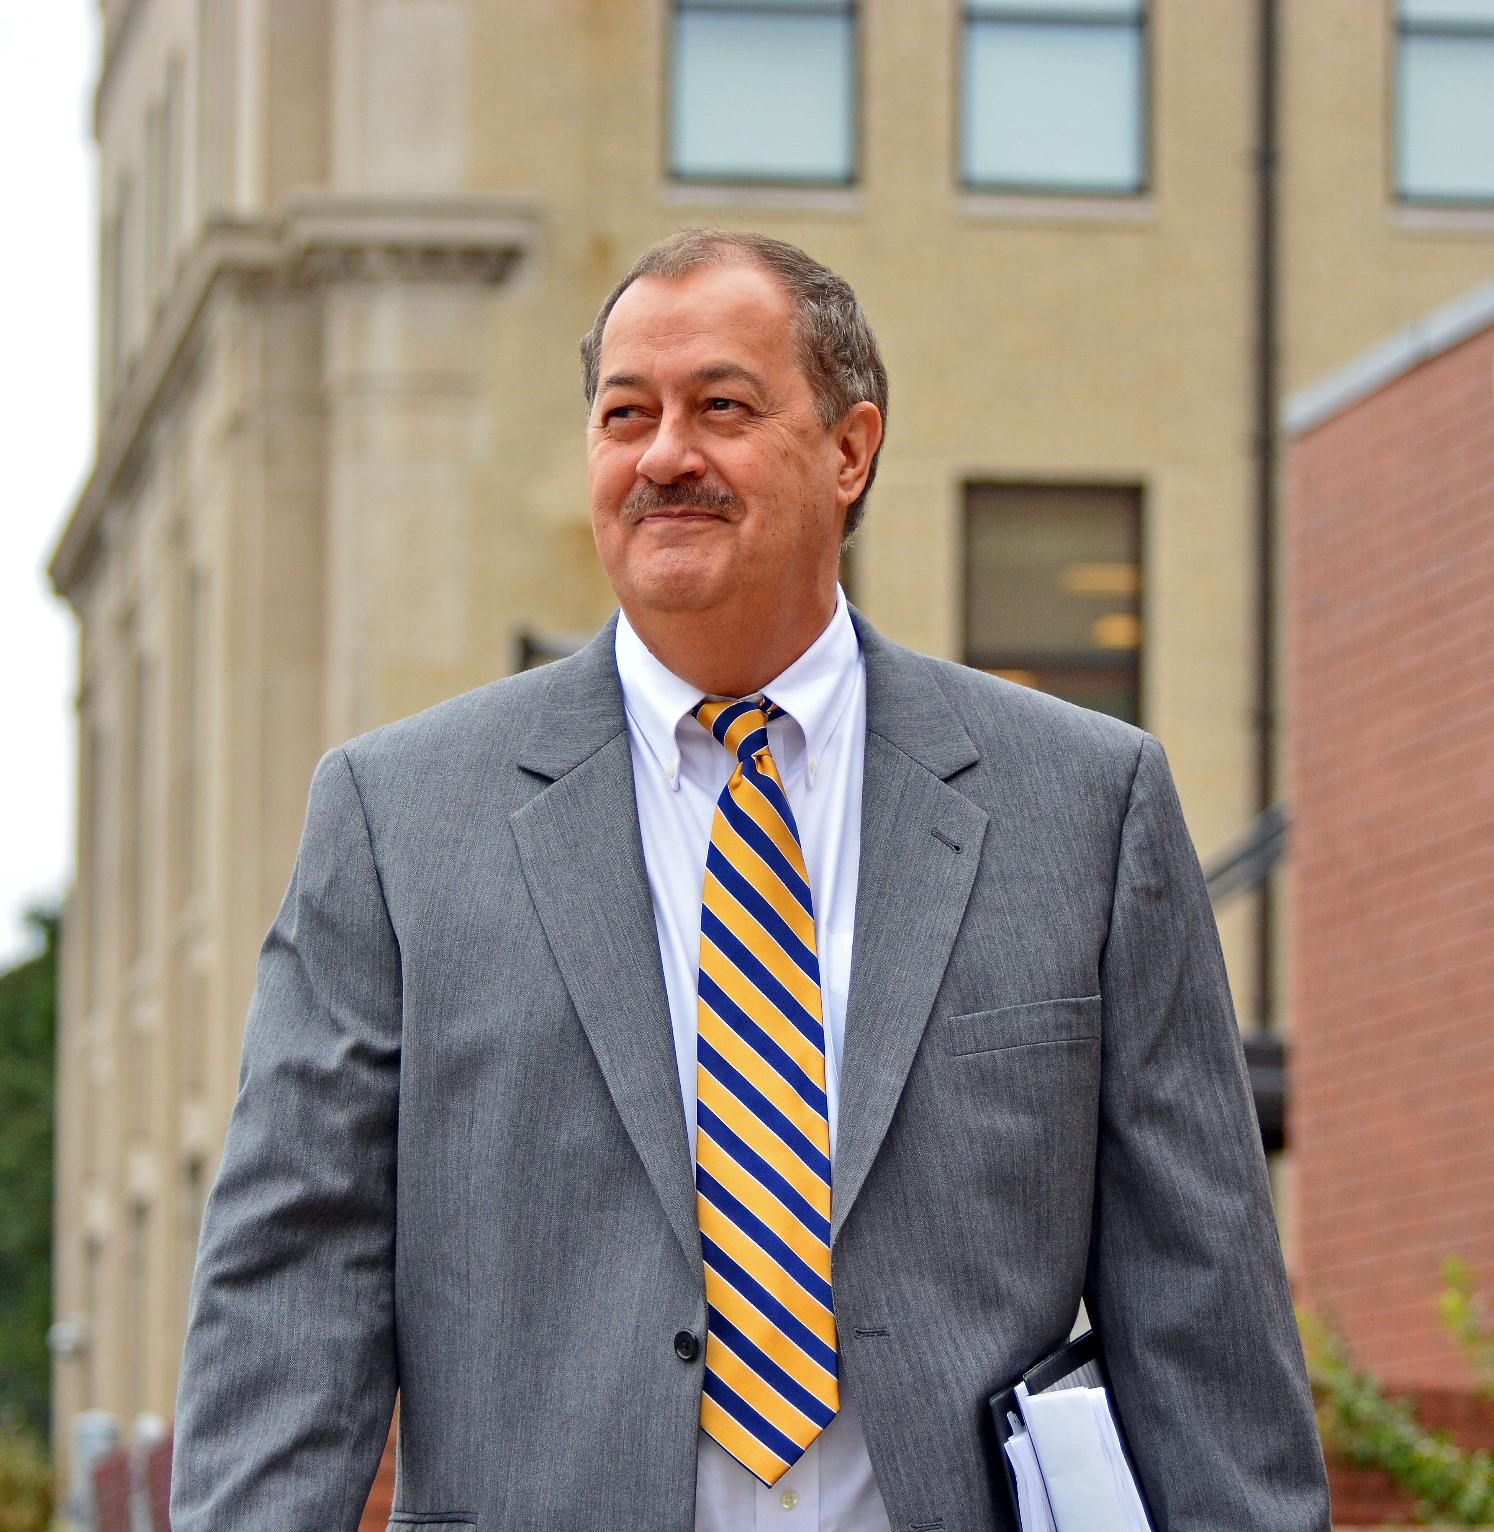 Ex-Massey Energy CEO Don Blankenship Convicted Of